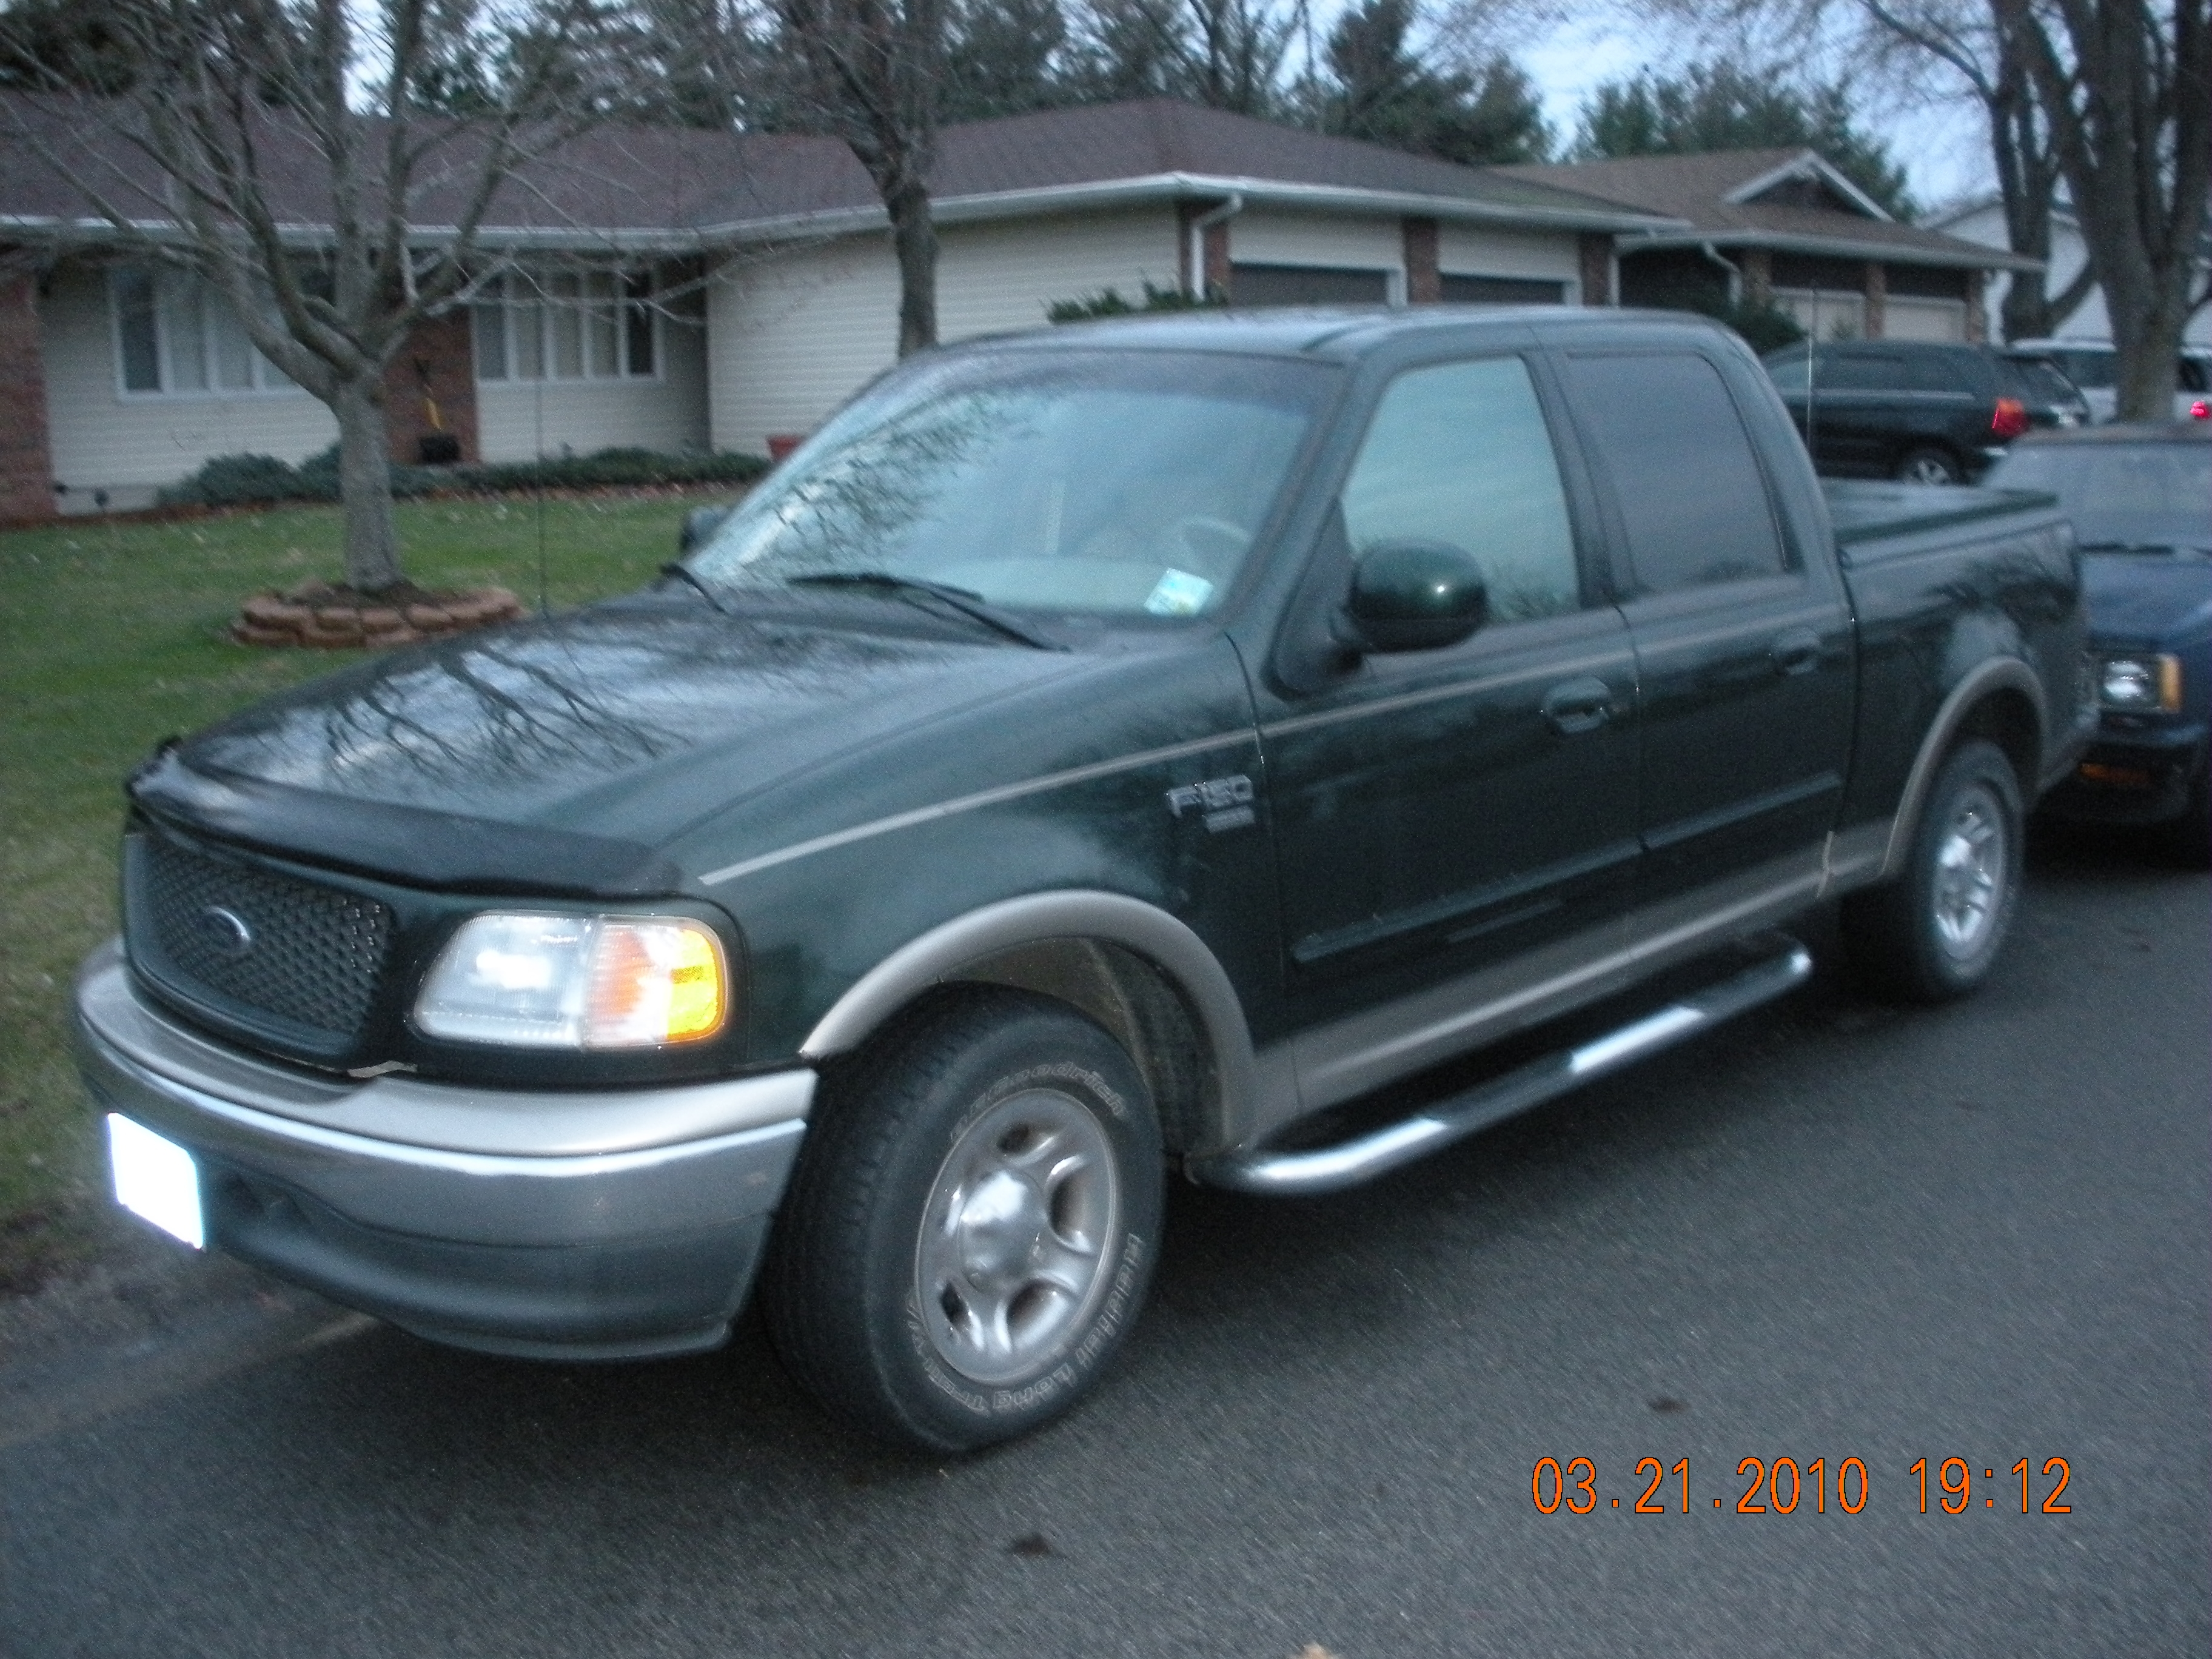 asc1189's 2001 Ford F150 SuperCrew Cab